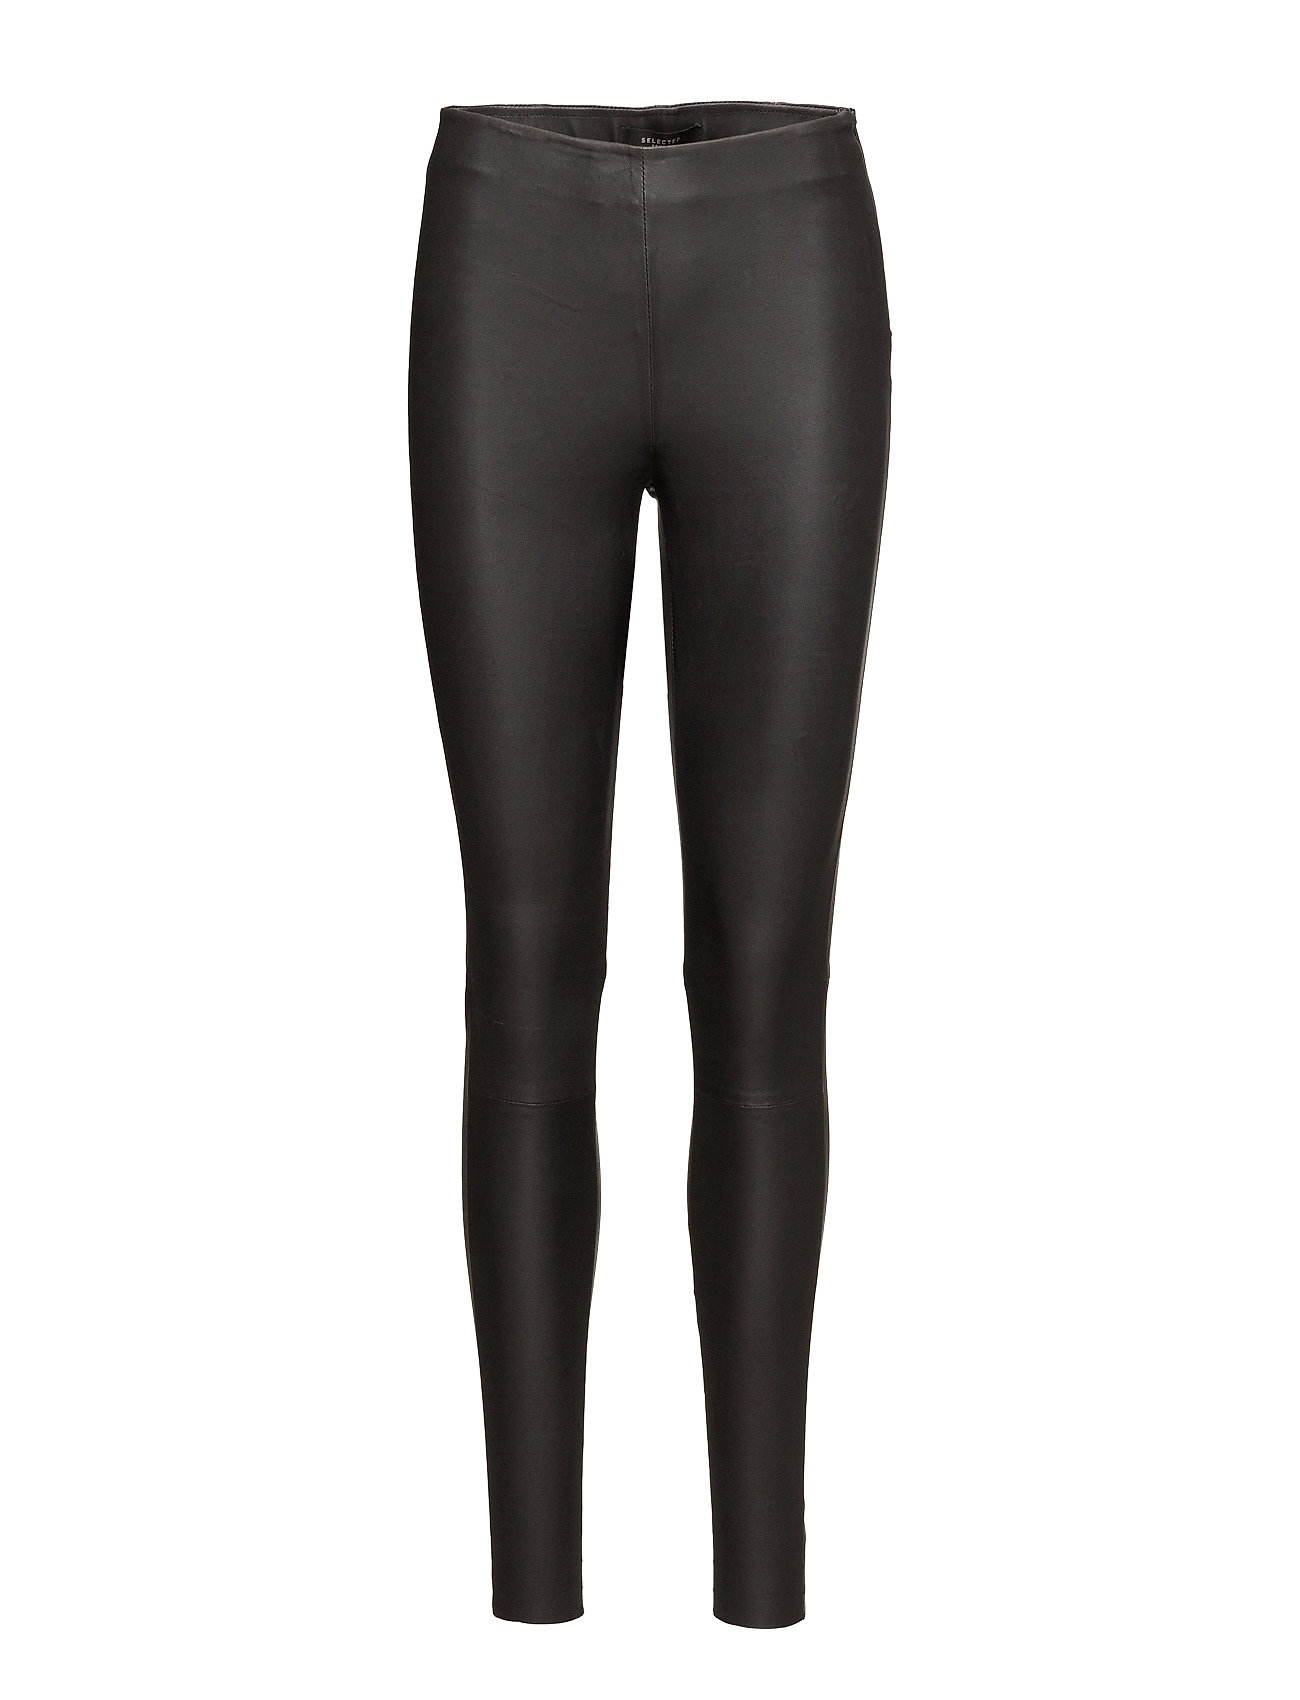 Image of Slfsylvia Mw Stretch Leather Leggin Noos Leather Leggings/Bukser Sort SELECTED FEMME (2384571187)